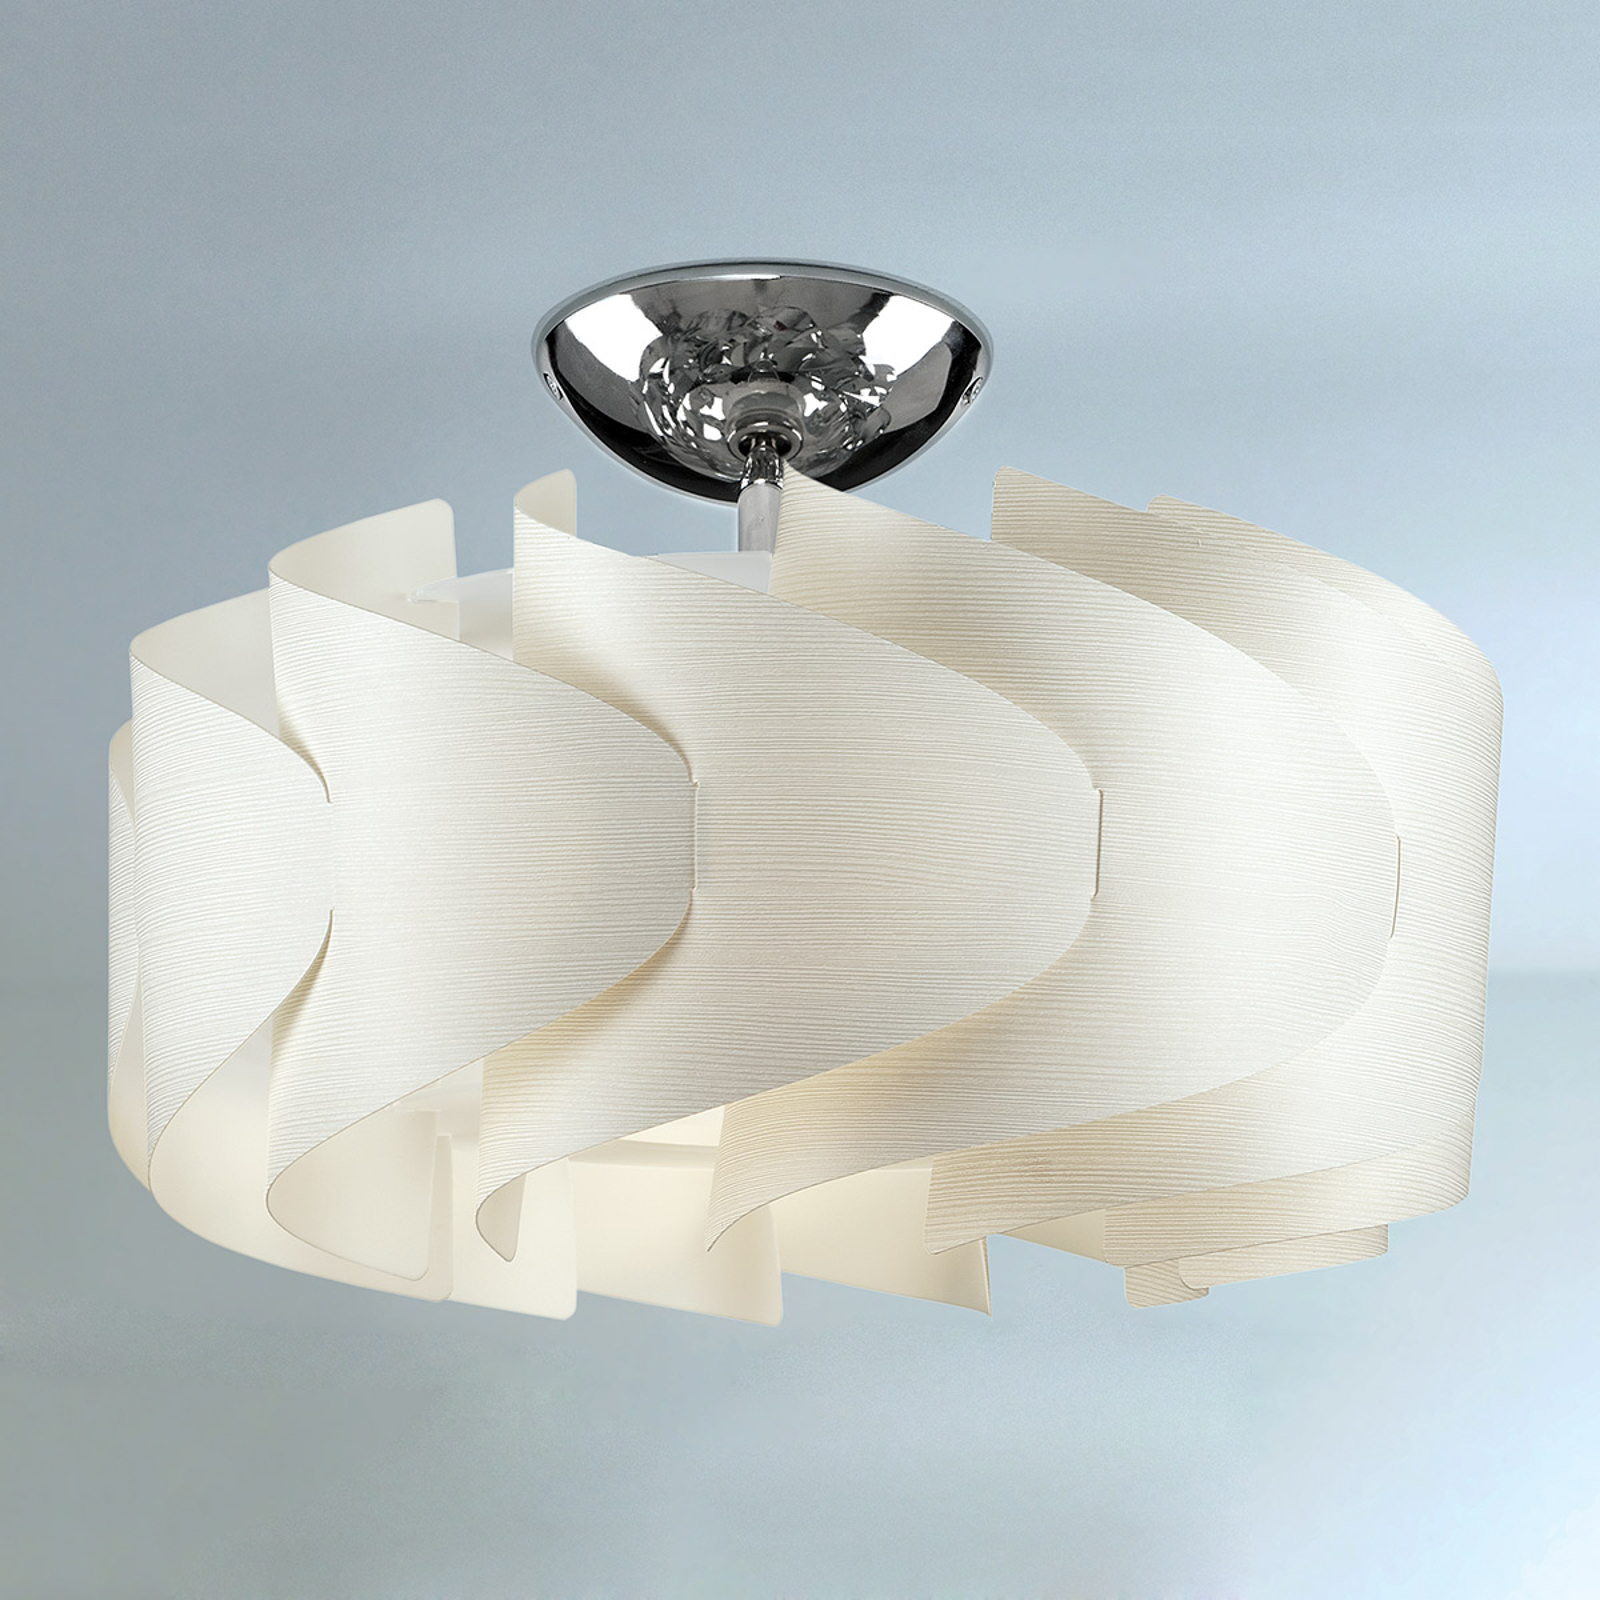 Ceiling light Sky Mini Ellix with a wooden finish_1056080_1